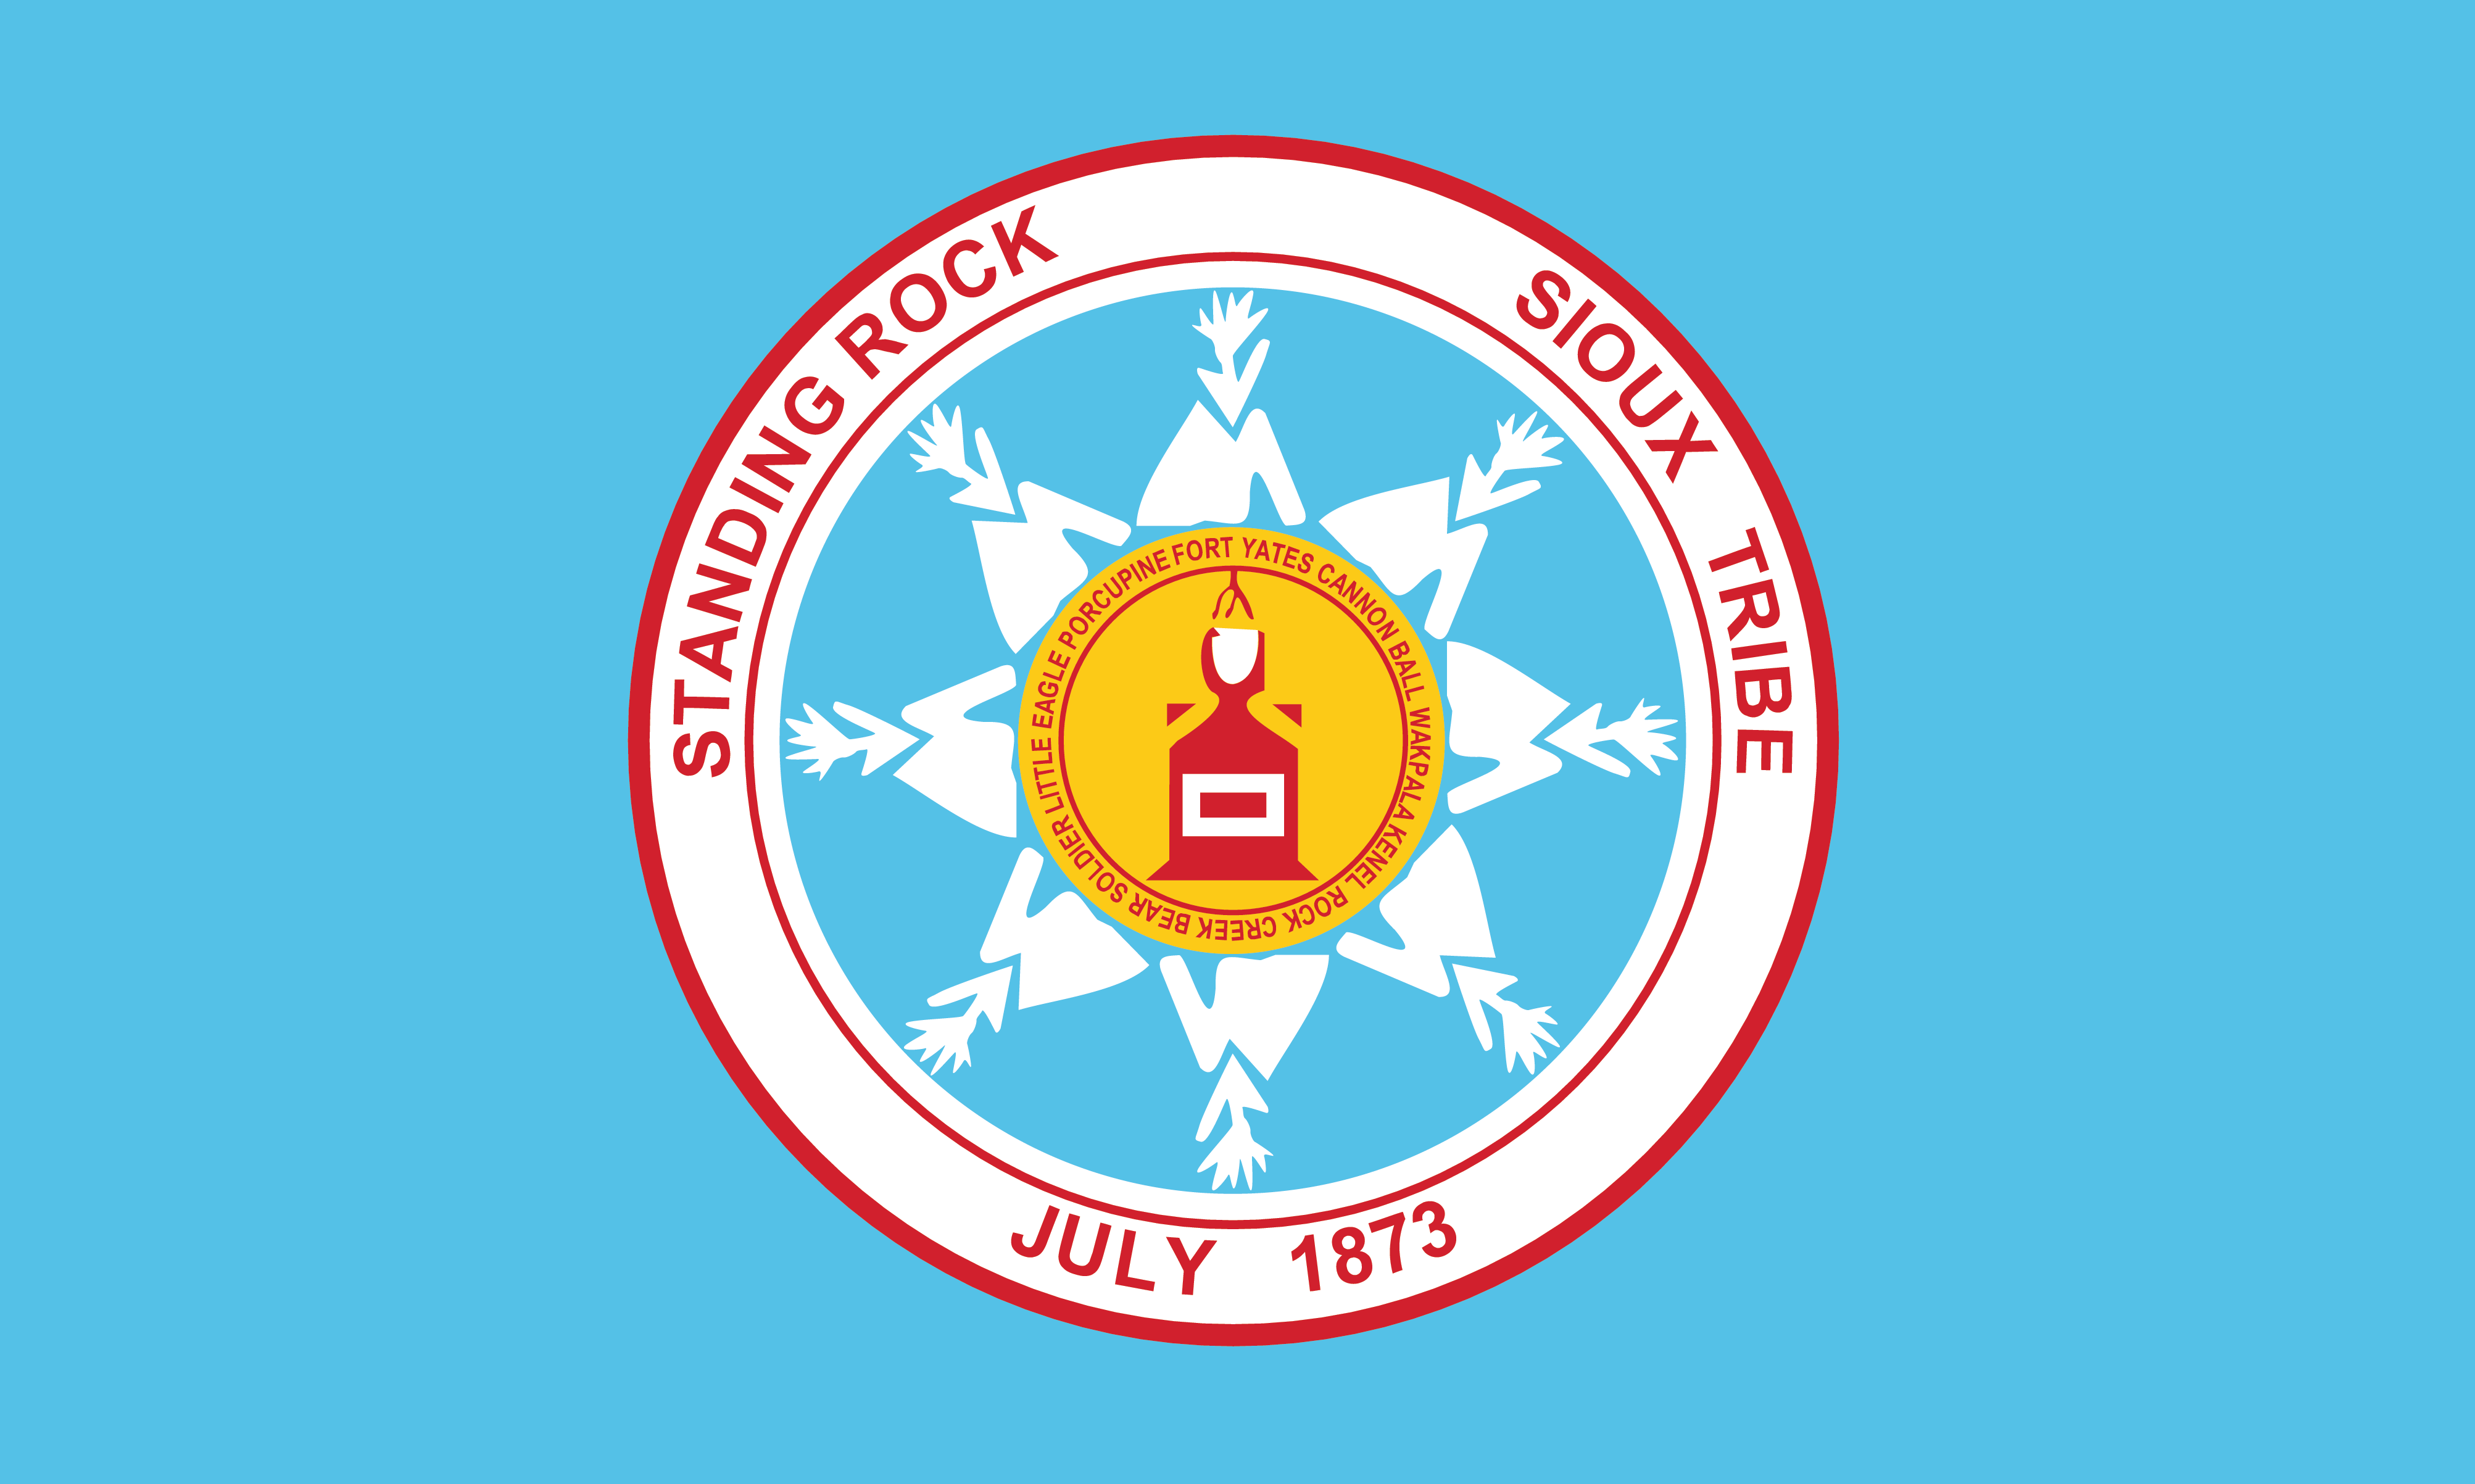 Cairns Column Examining The Flag Of The Standing Rock Sioux Tribe